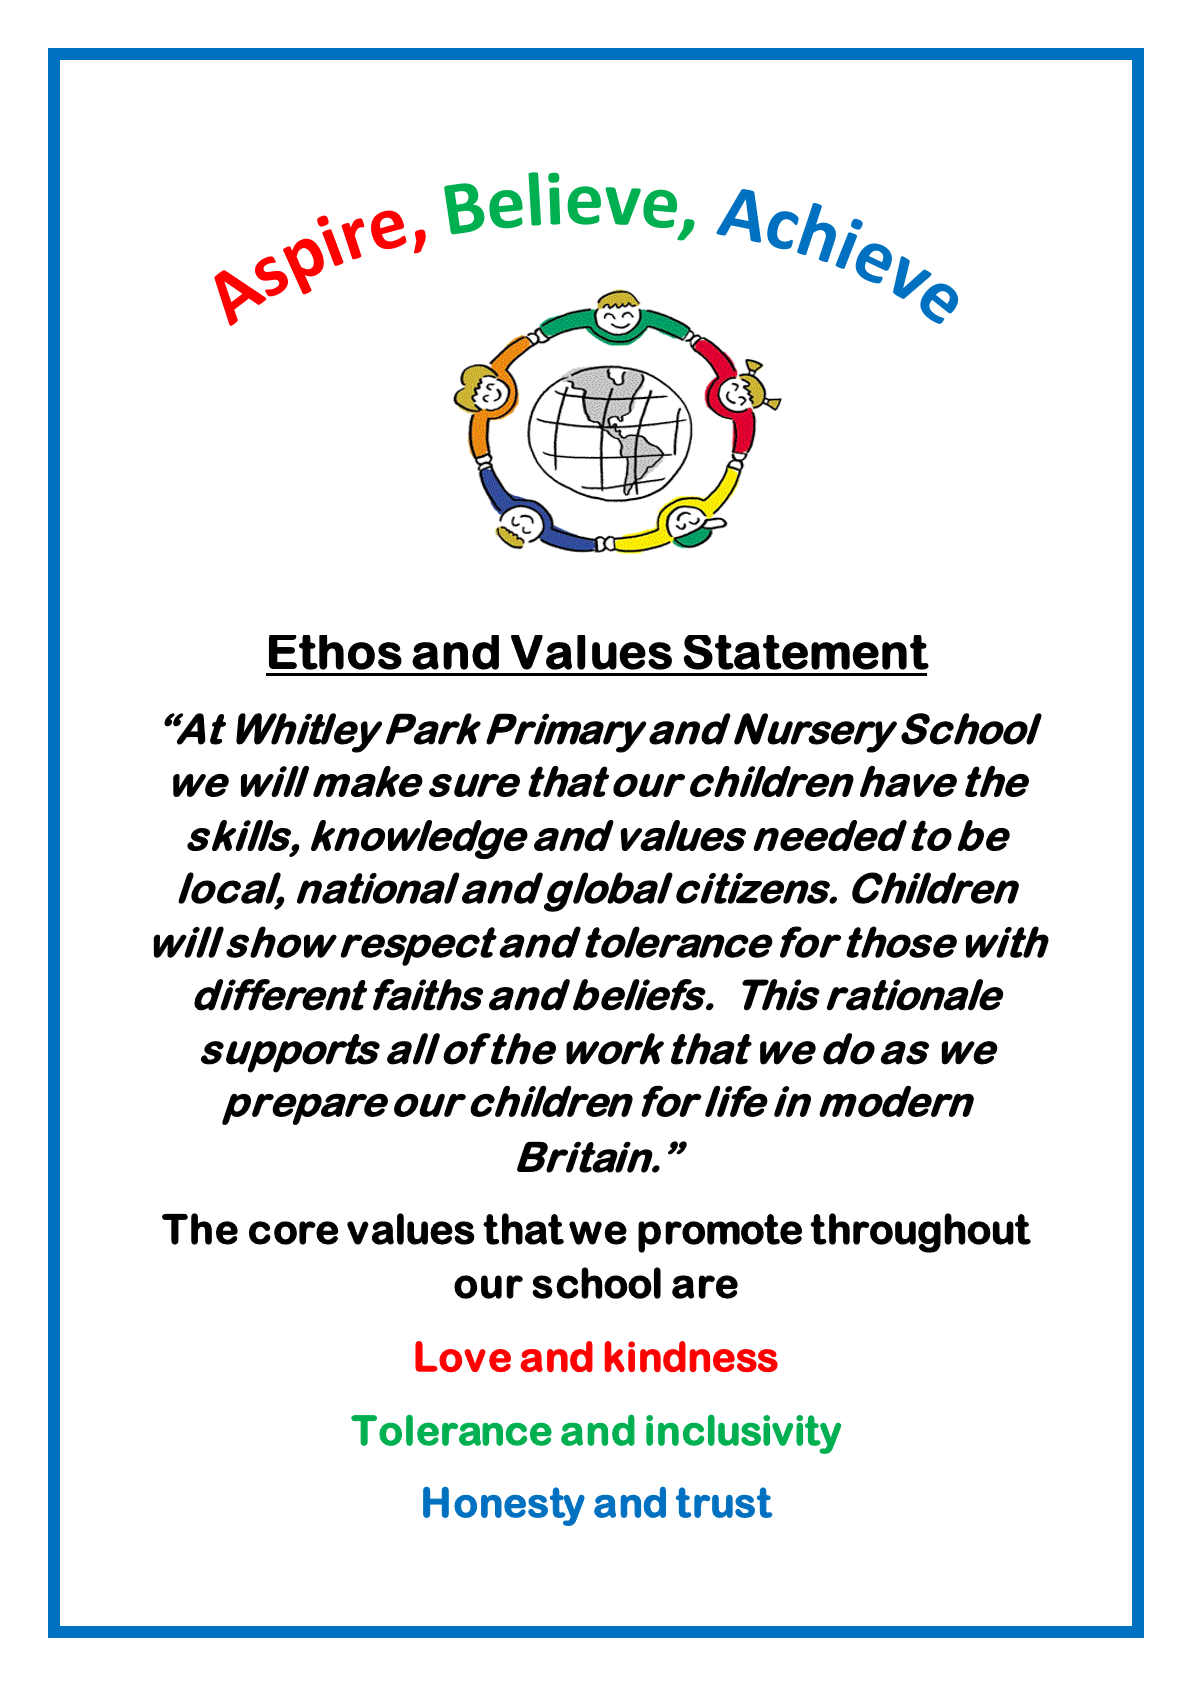 It is clear from the school's values just what sort of nurturing environment they are creating for their pupils: